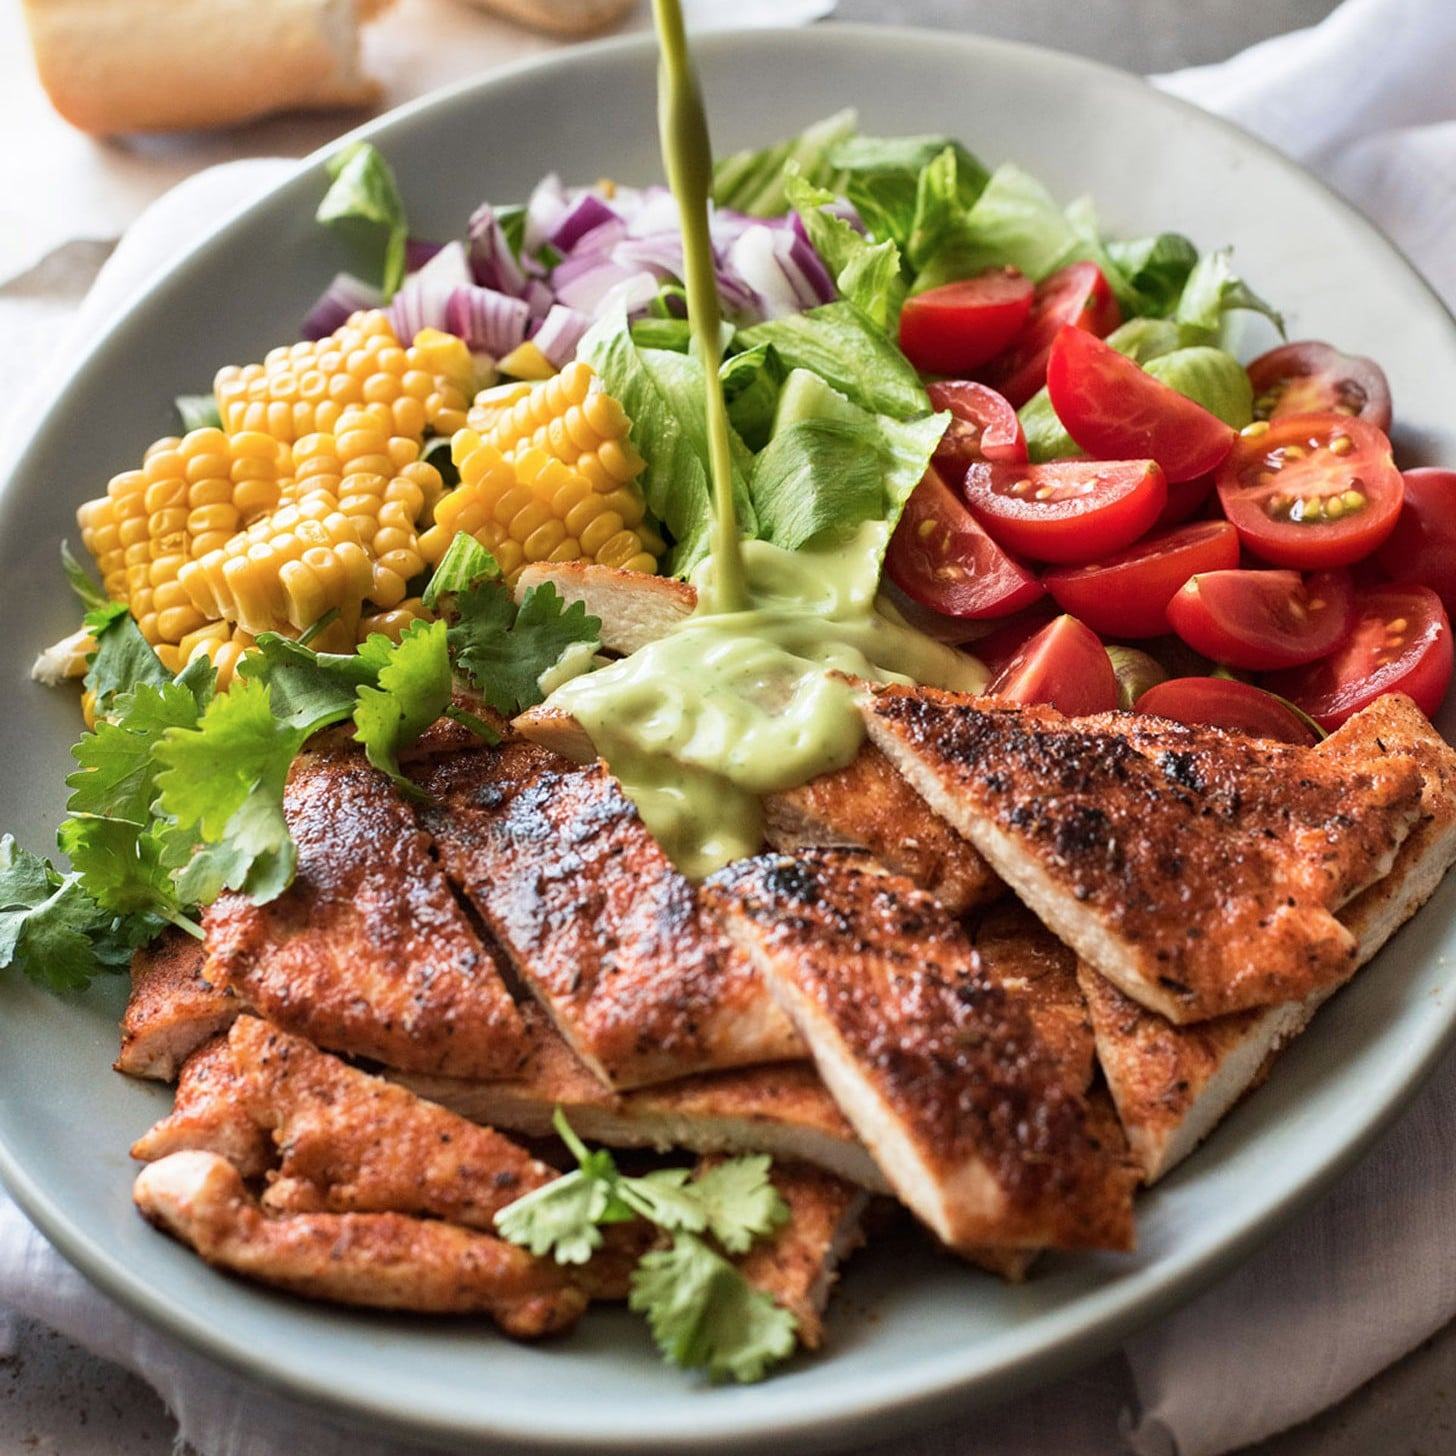 Healthy Salad Recipes With Chicken